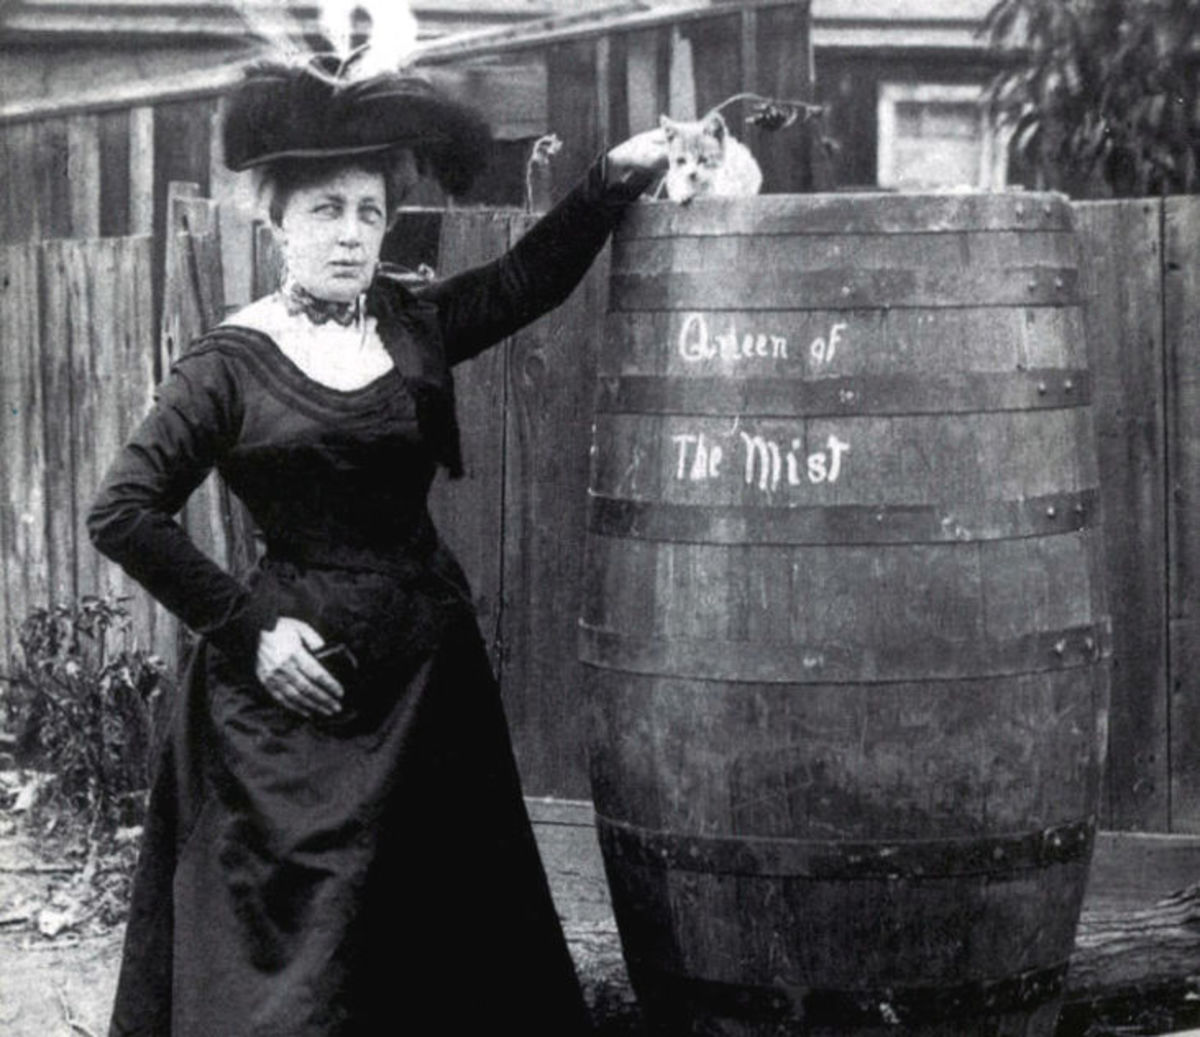 Annie Edson Taylor: First Person to Survive Going Over Niagara Falls in a Wooden Barrel